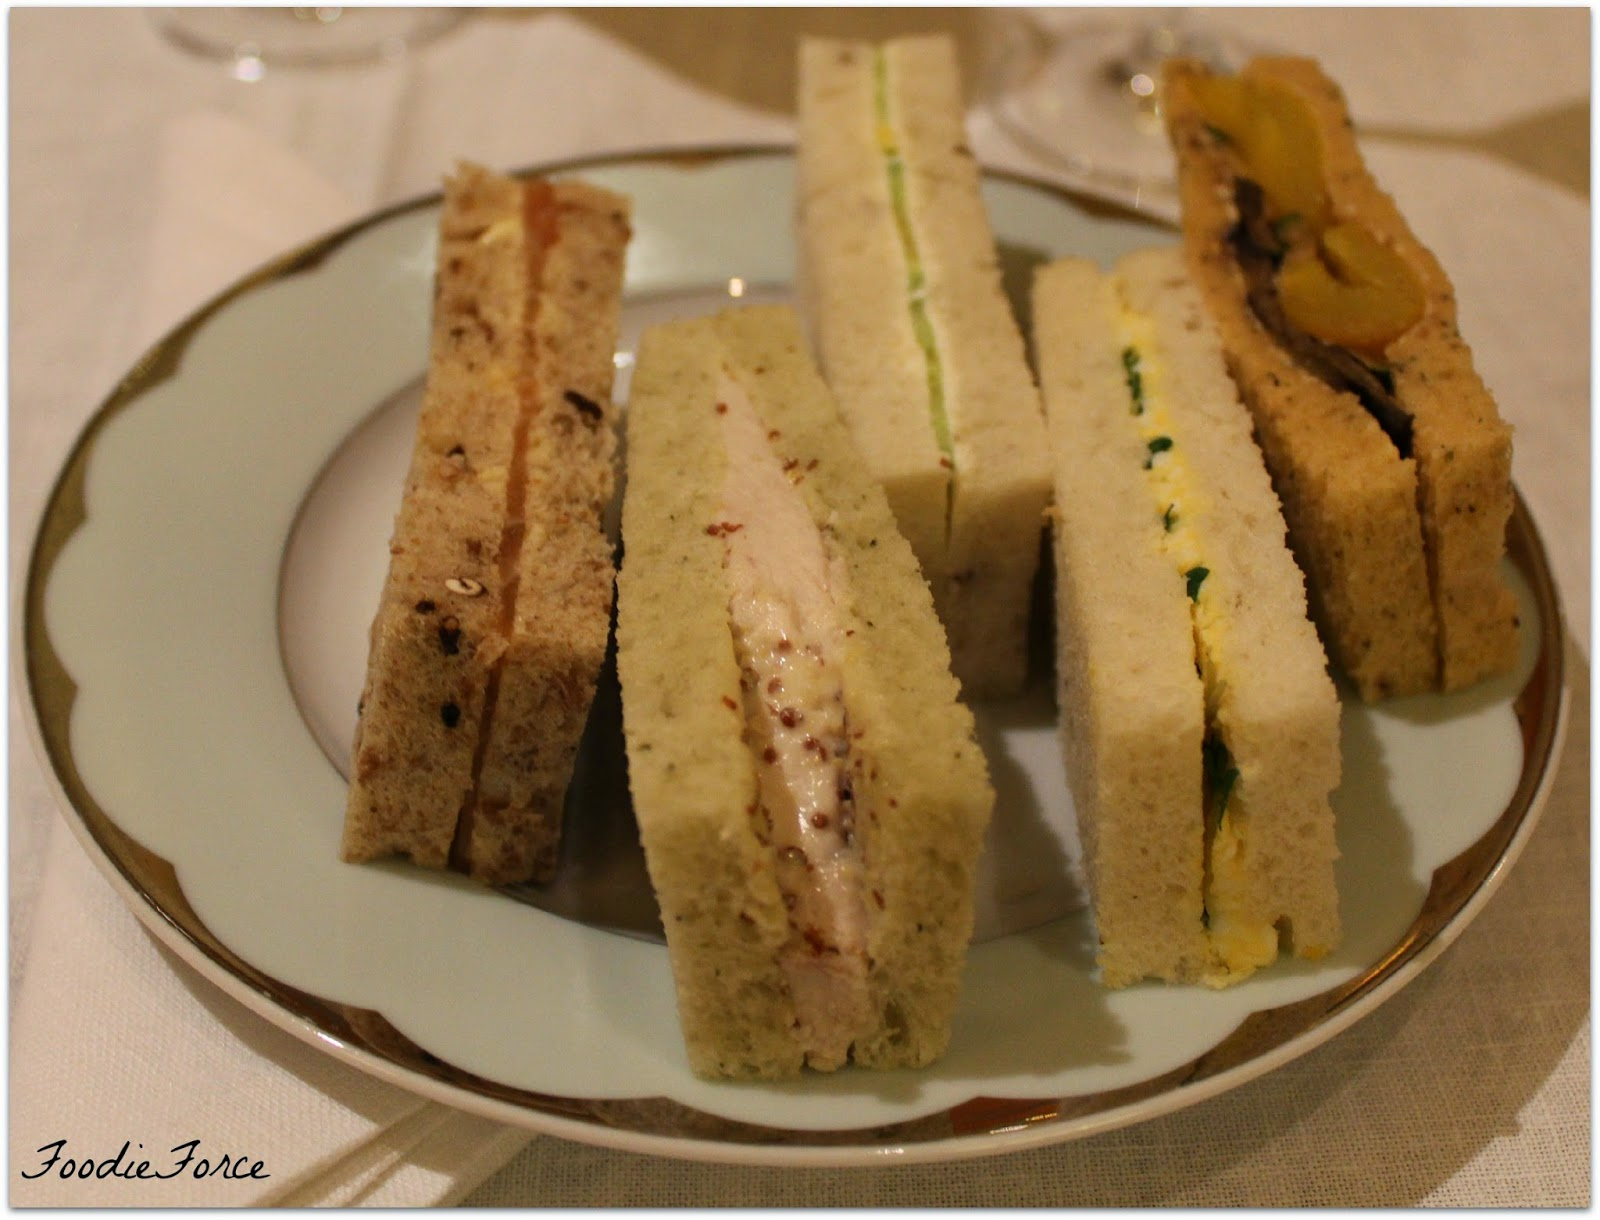 The Dorchester hotel Sandwiches